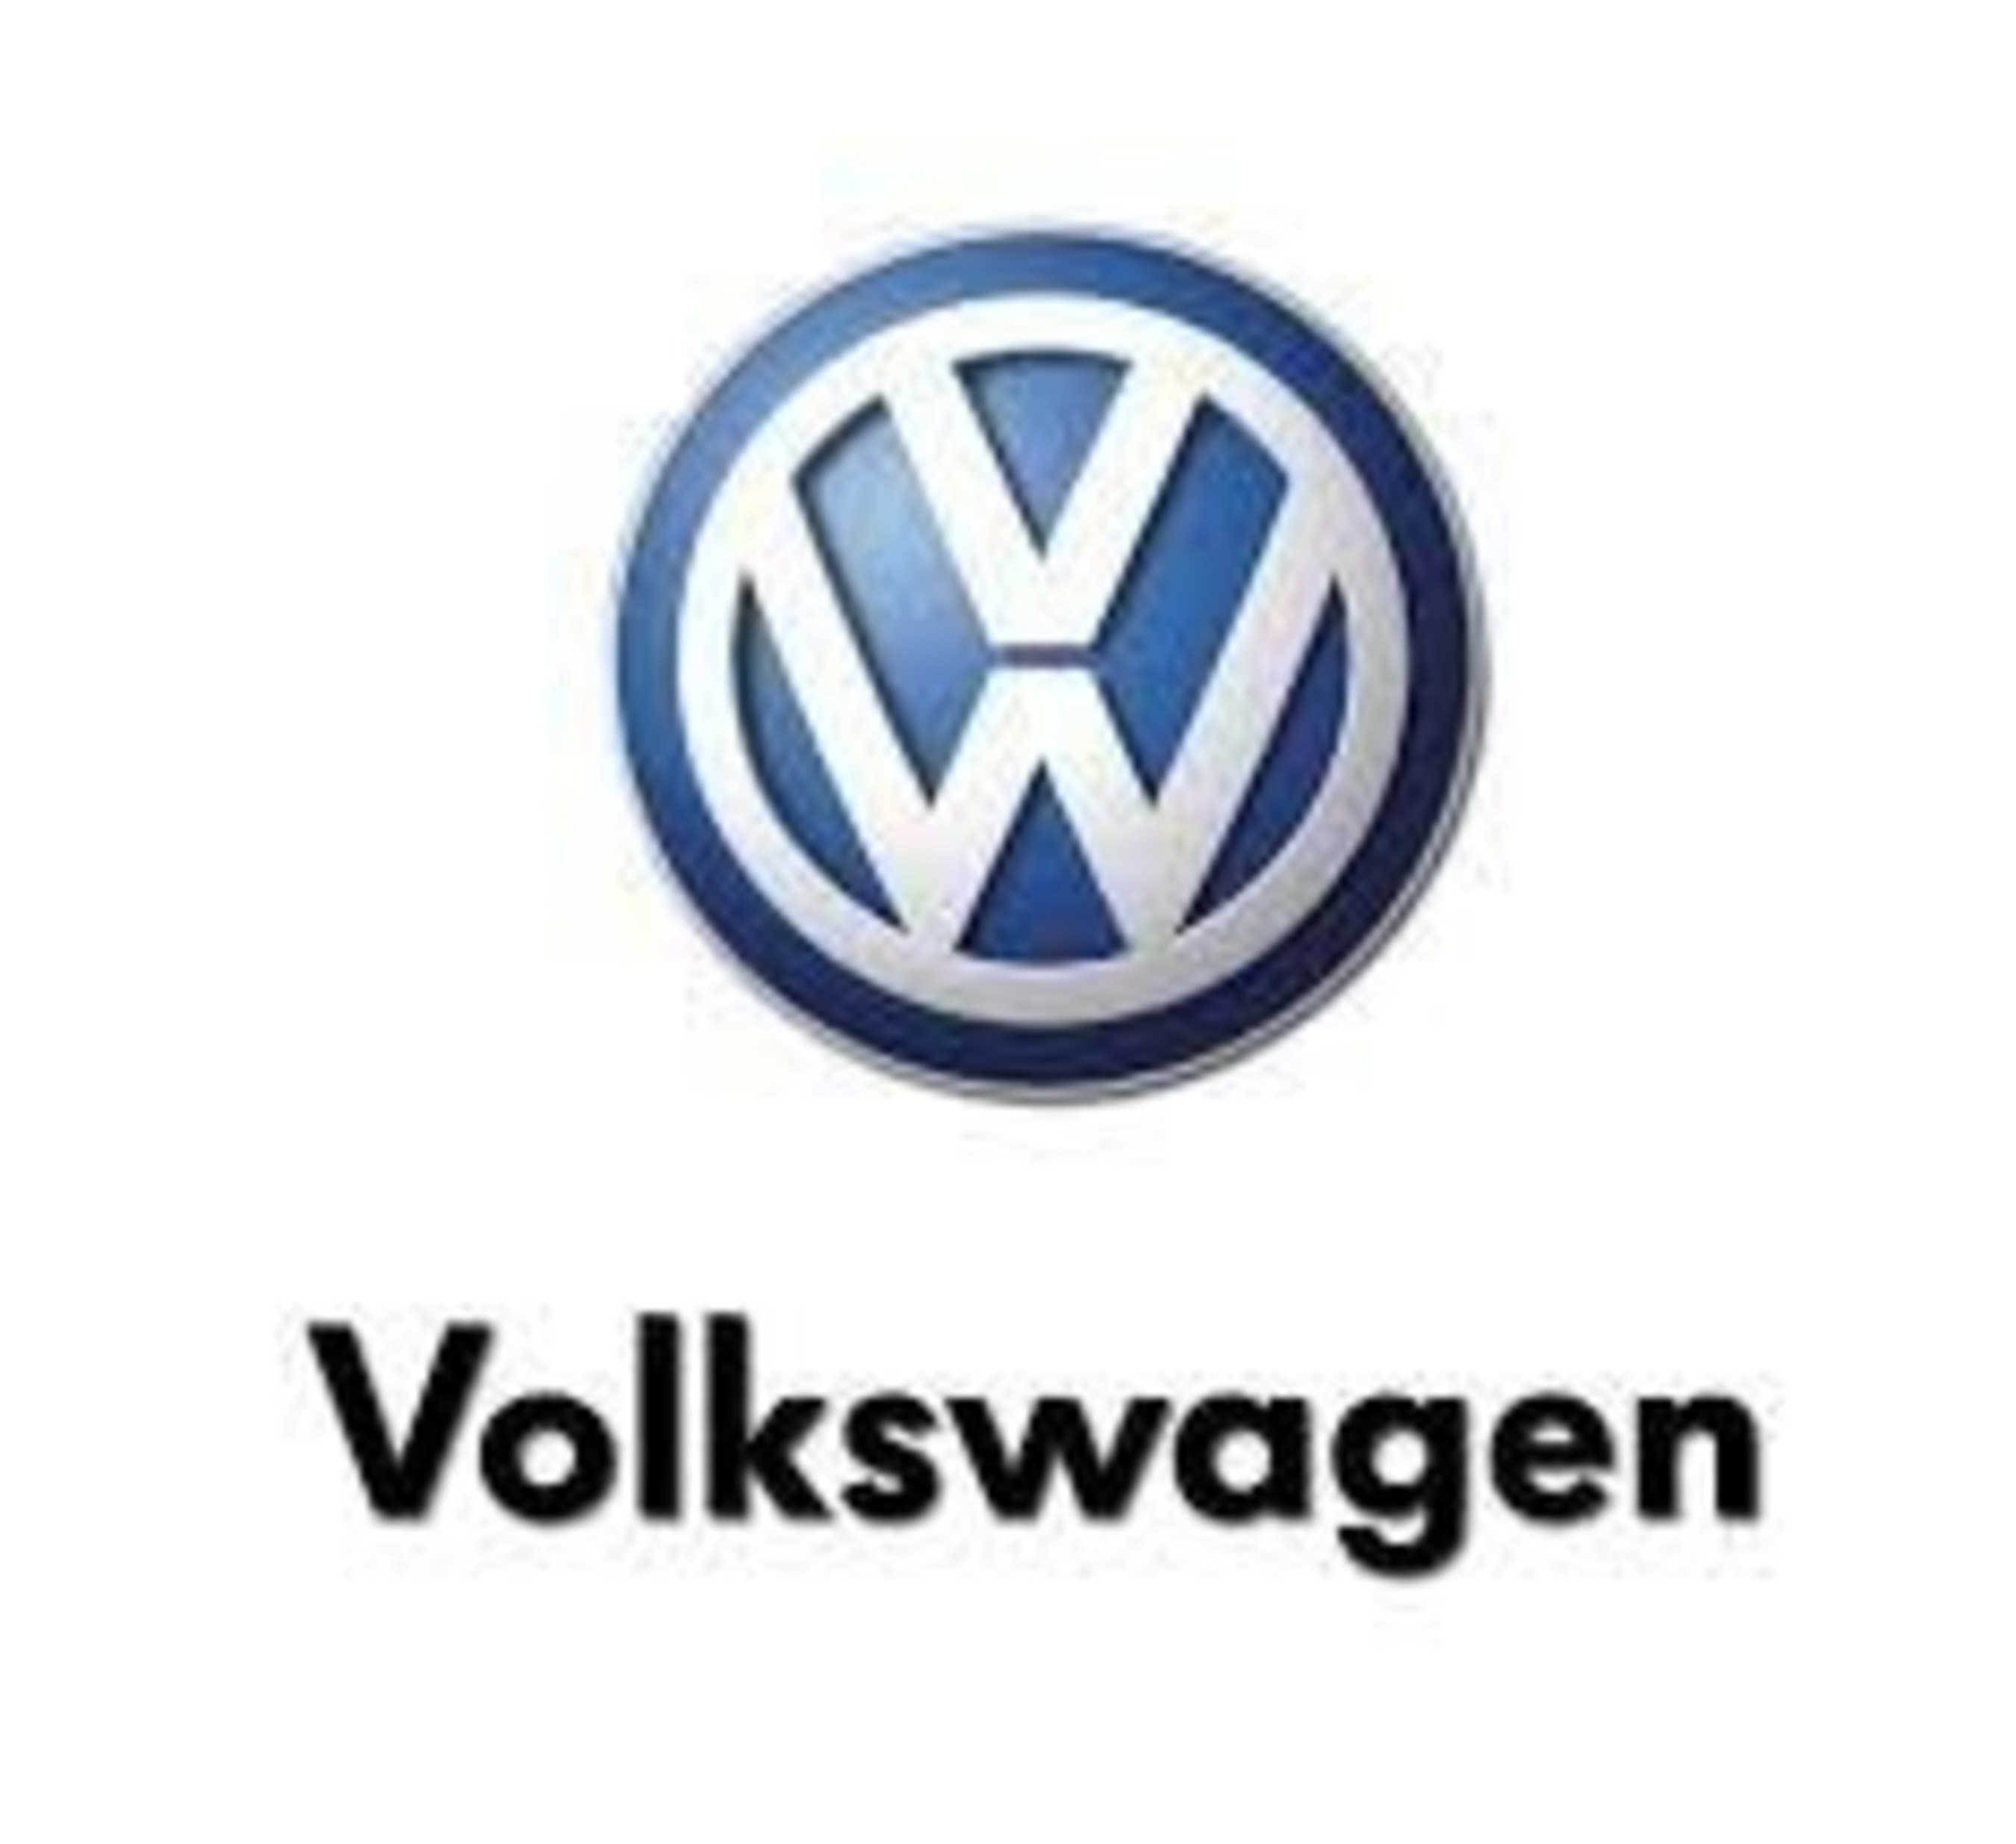 Volkswagen Announced Plans To Refit Vehicles That Have The Emission Cheating Software!